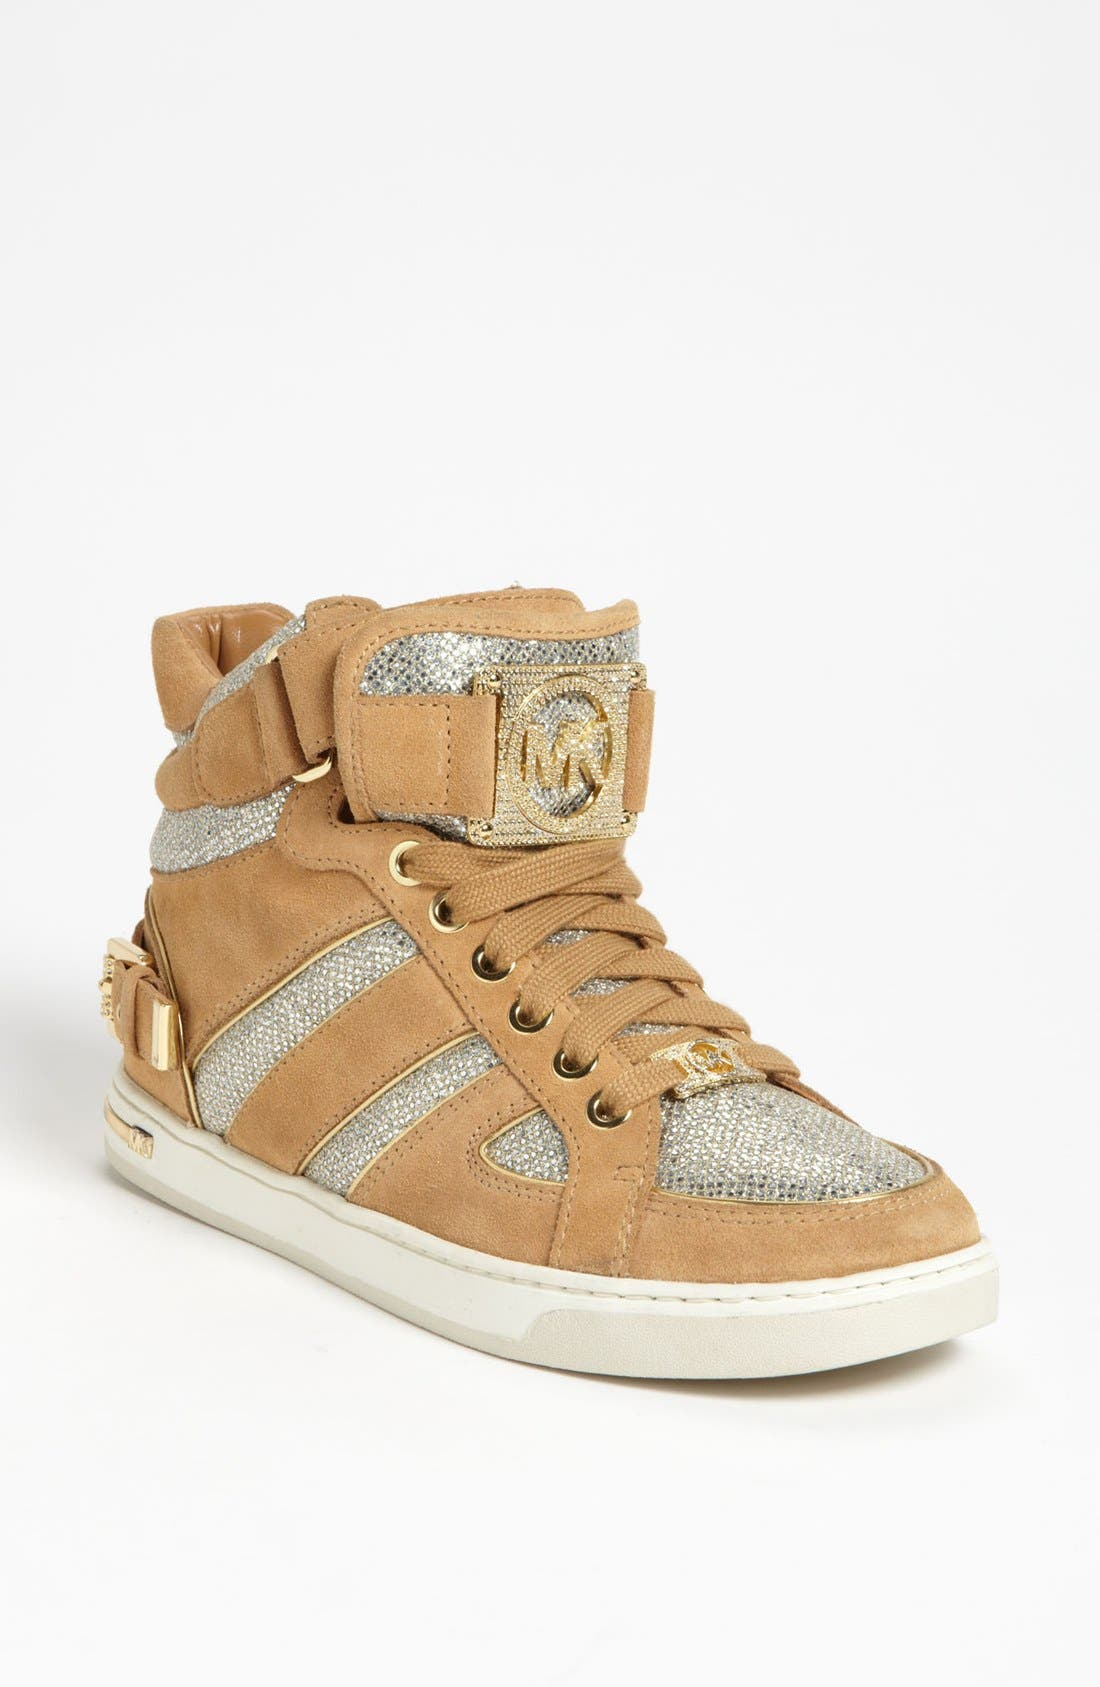 Alternate Image 1 Selected - MICHAEL Michael Kors 'Fulton' High Top Sneaker